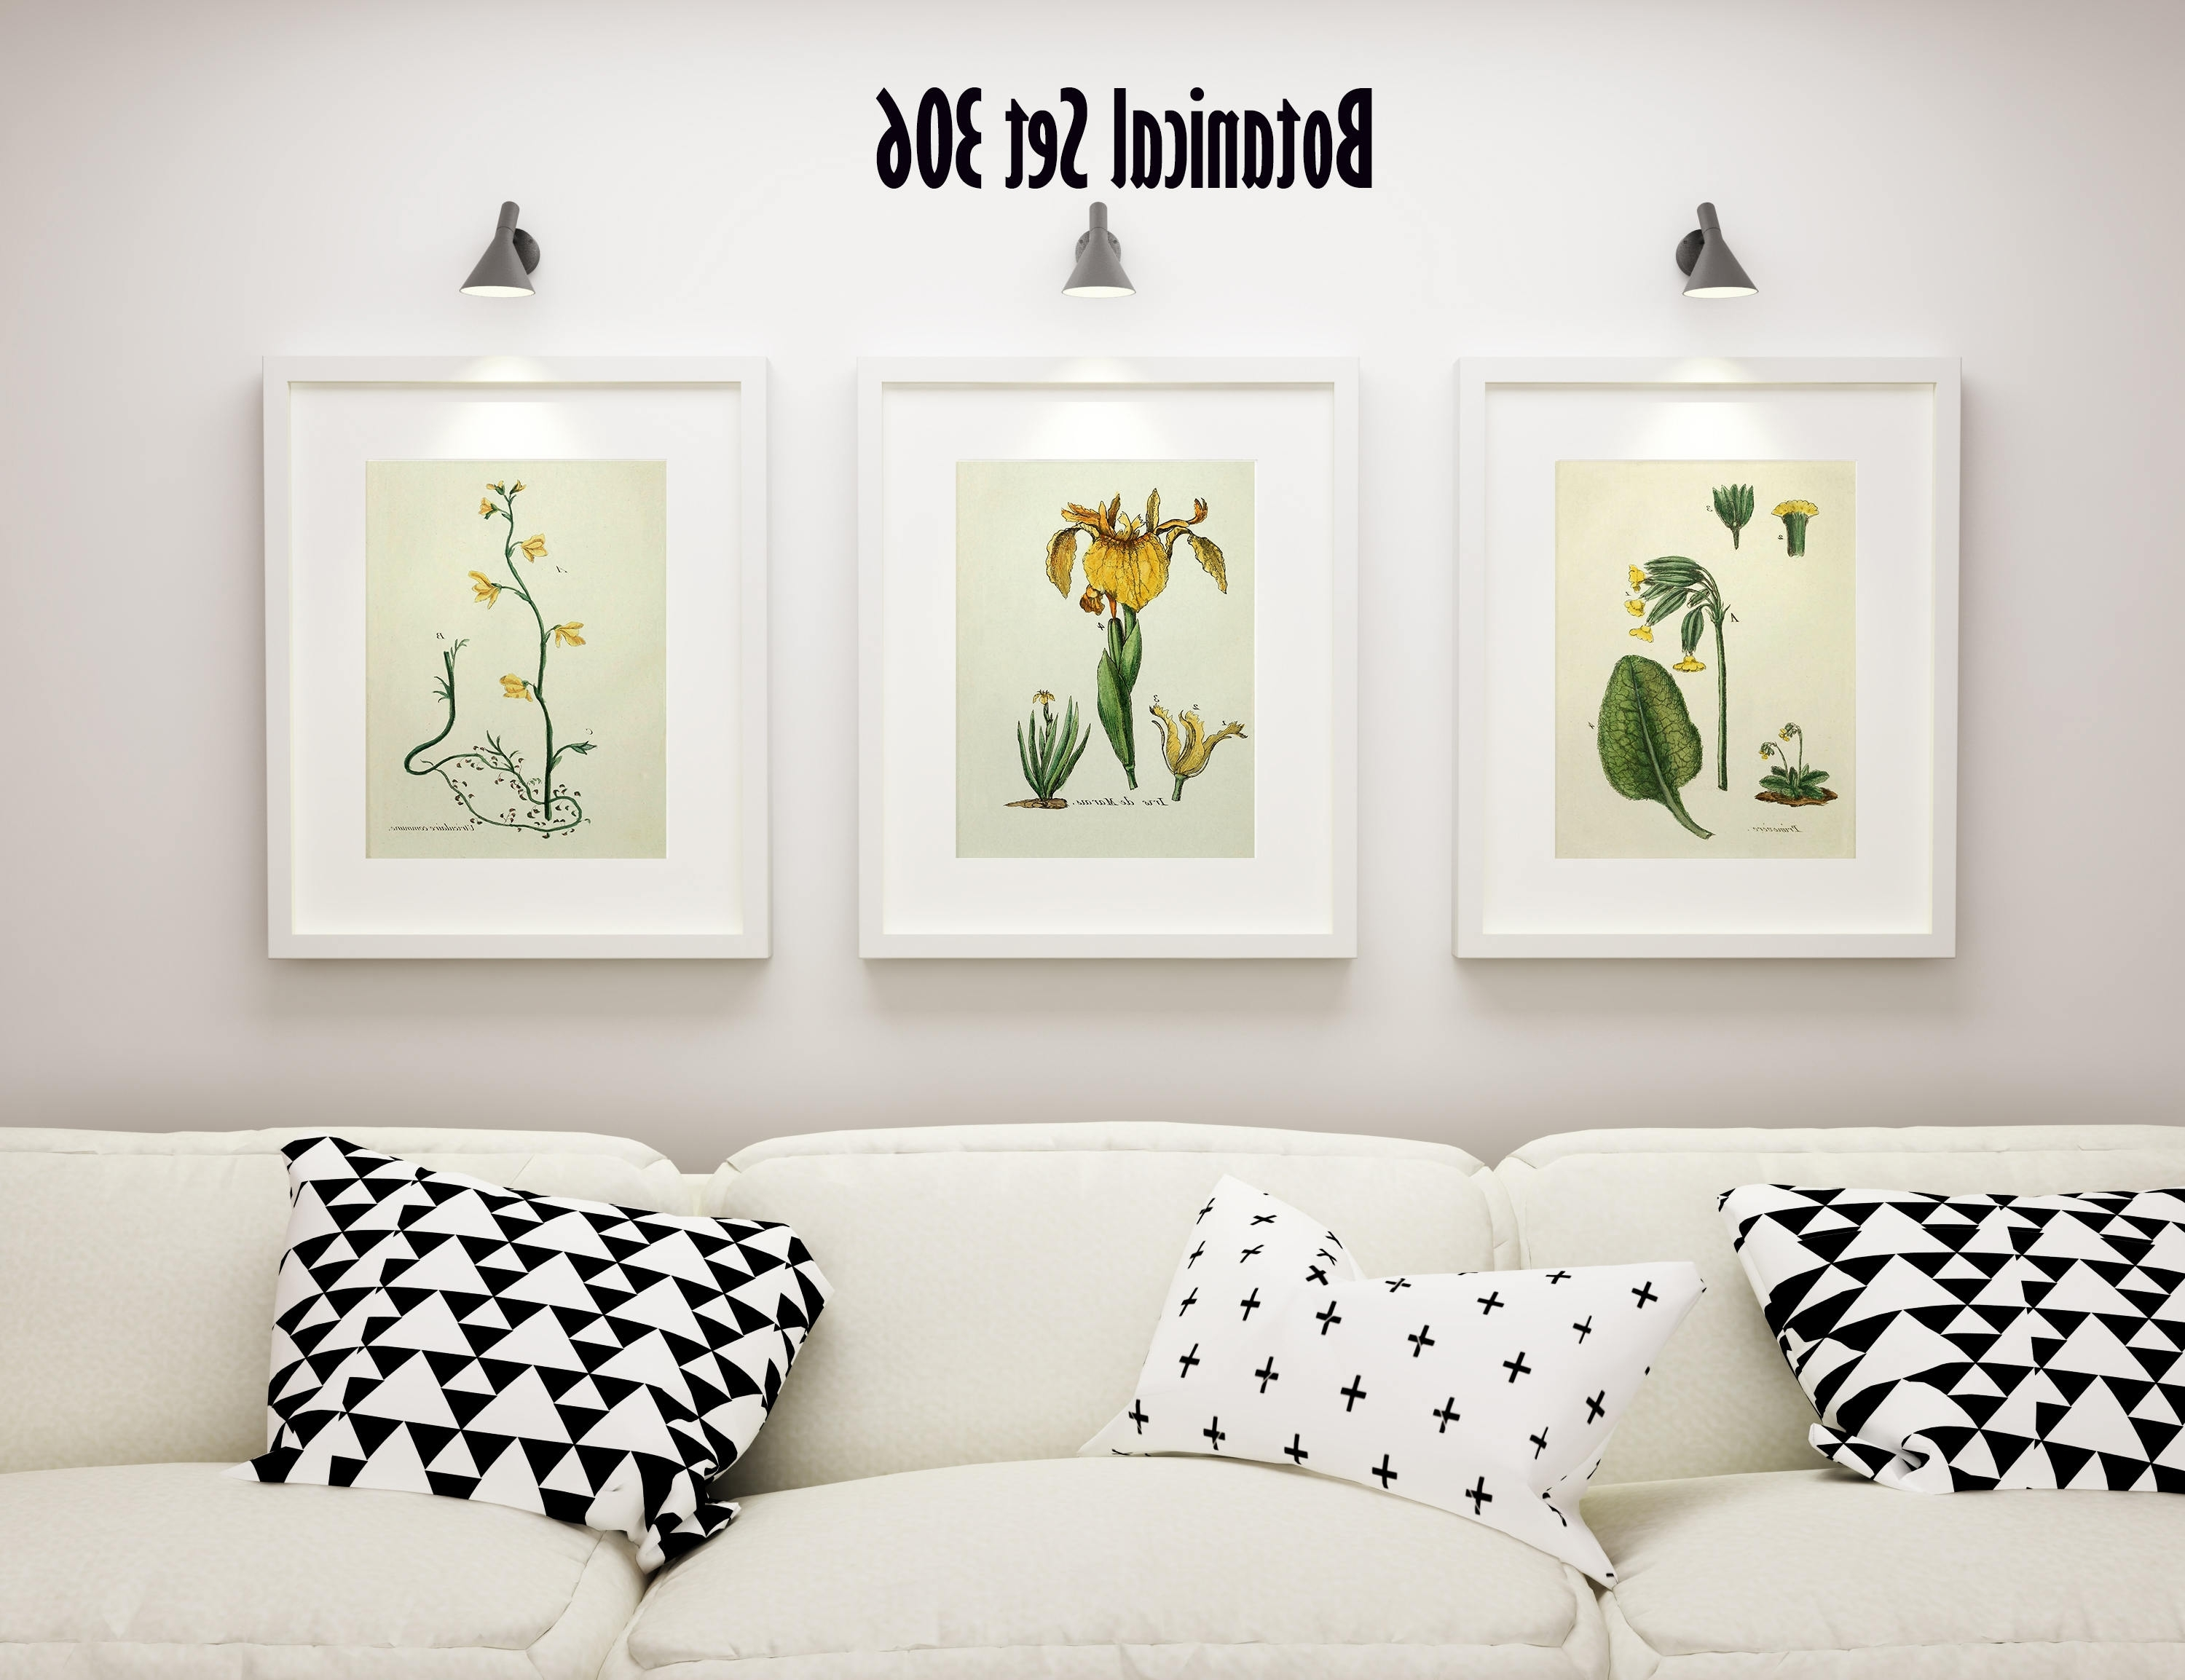 3 Vintage Floral Prints – Matted And Framed – Yellow Floral Prints Inside Popular French Country Wall Art Prints (View 1 of 15)